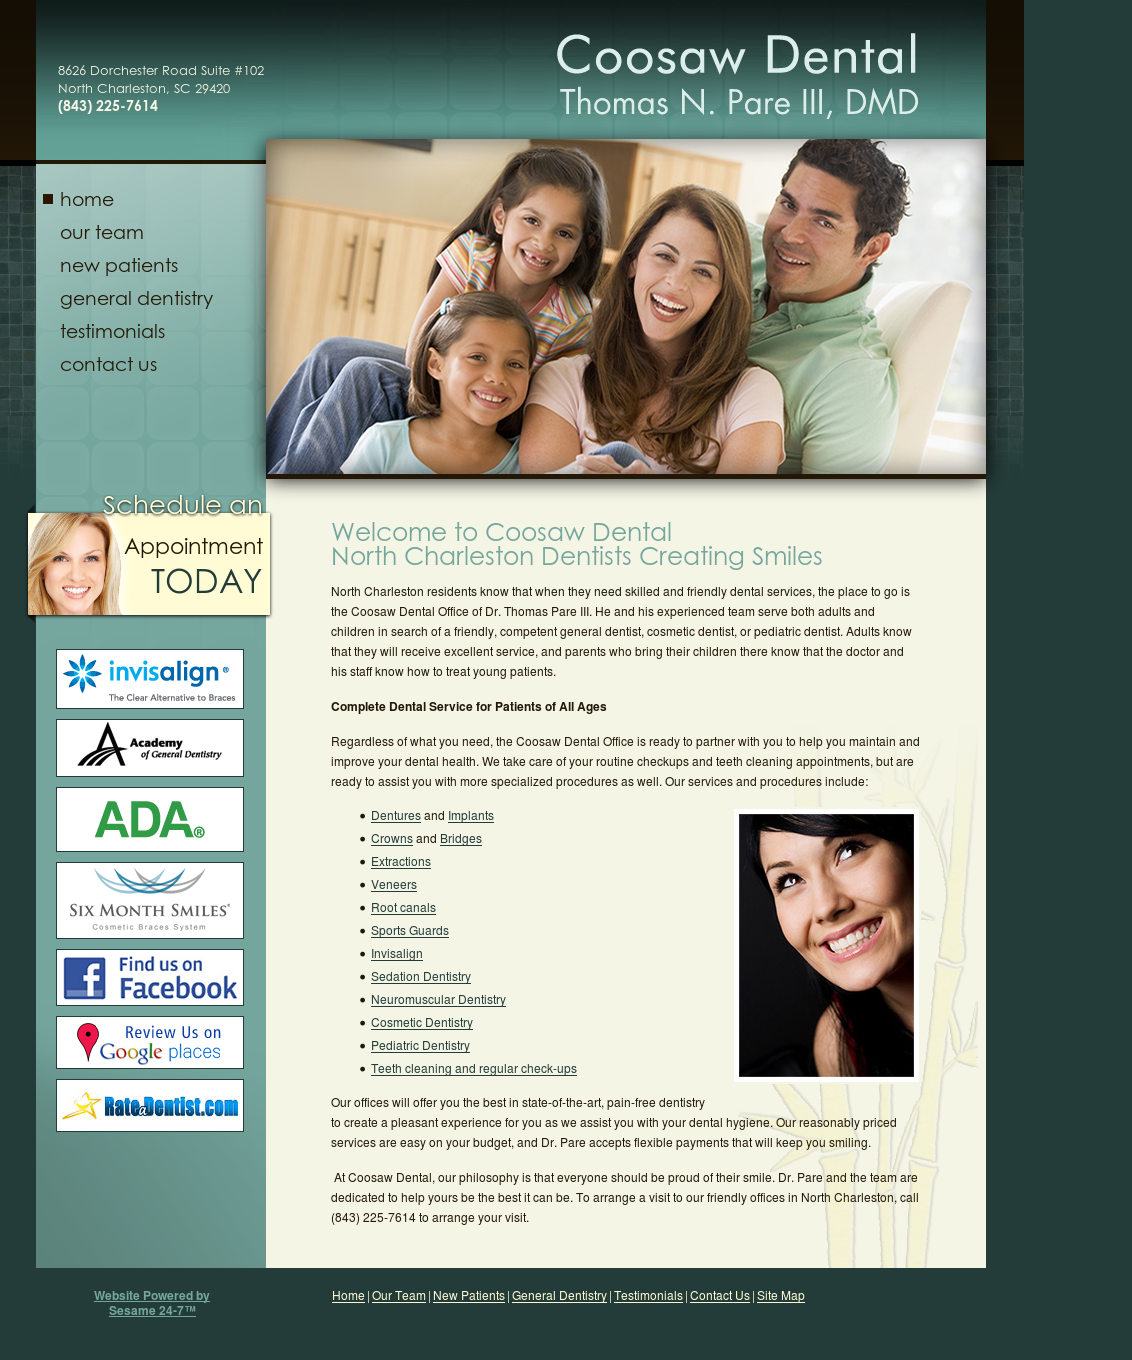 Coosaw Dental Competitors, Revenue and Employees - Owler